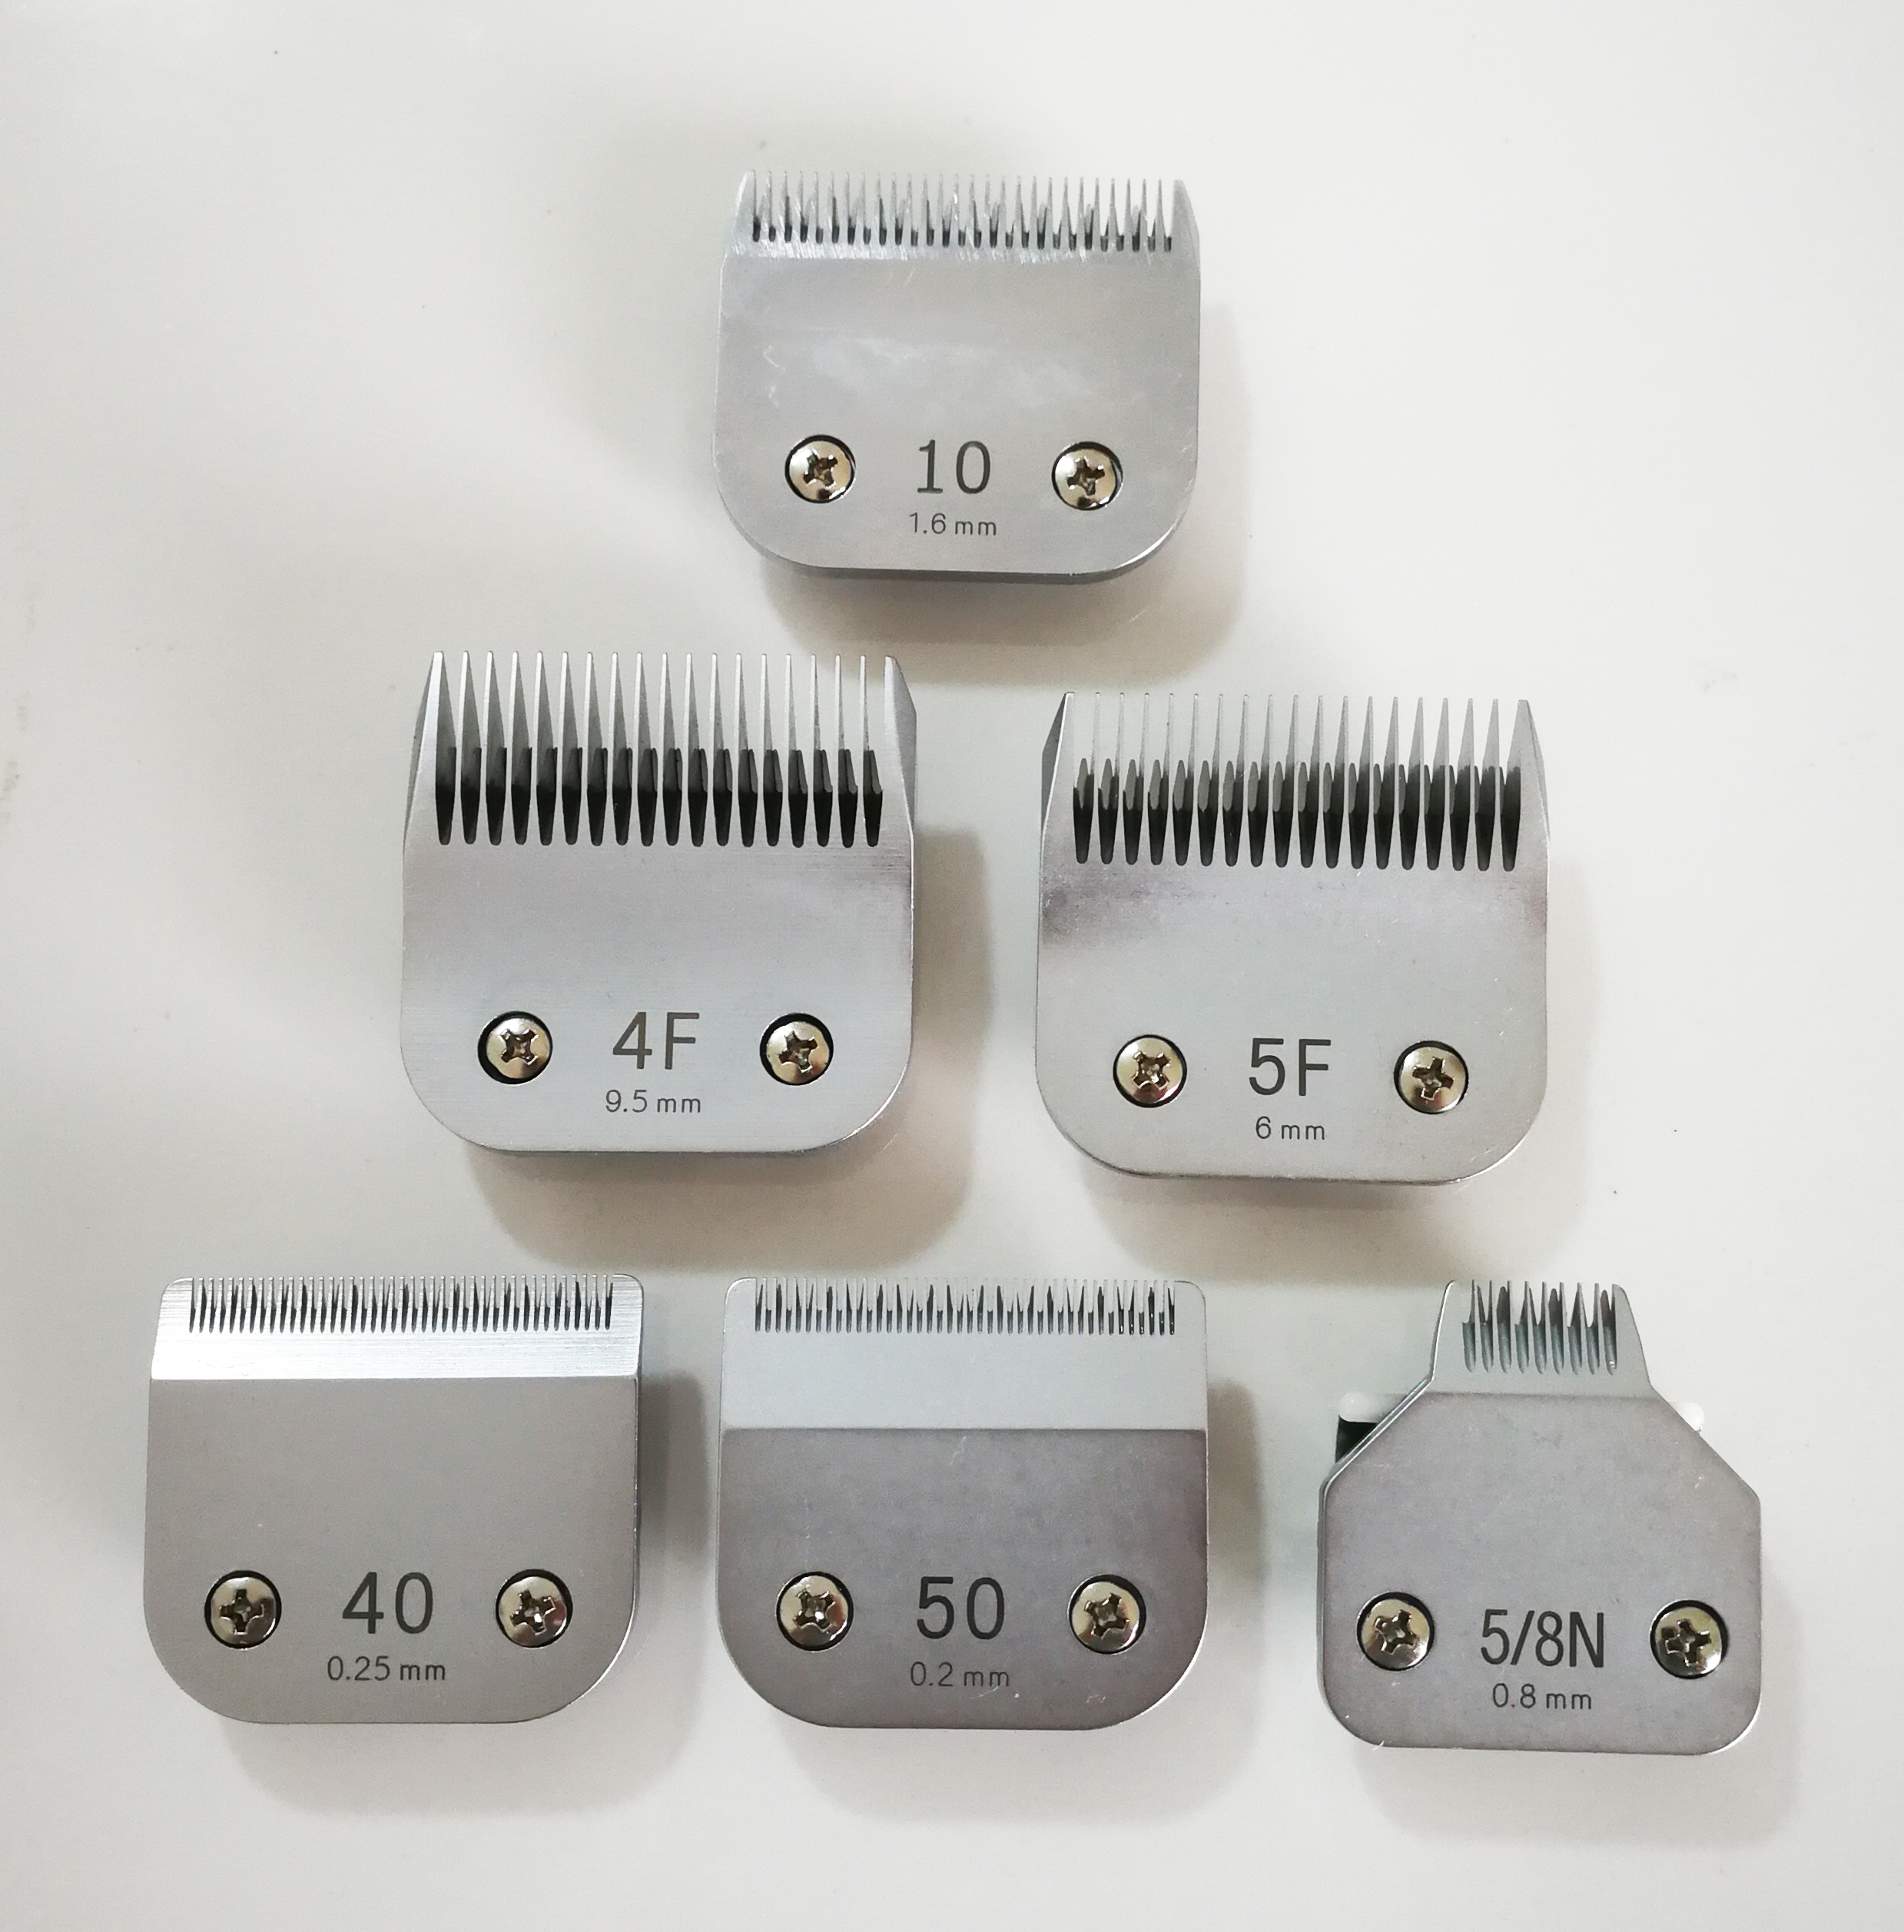 all sizes A5 blade for dog grooming clipper made in taiwan steel or ceramic.